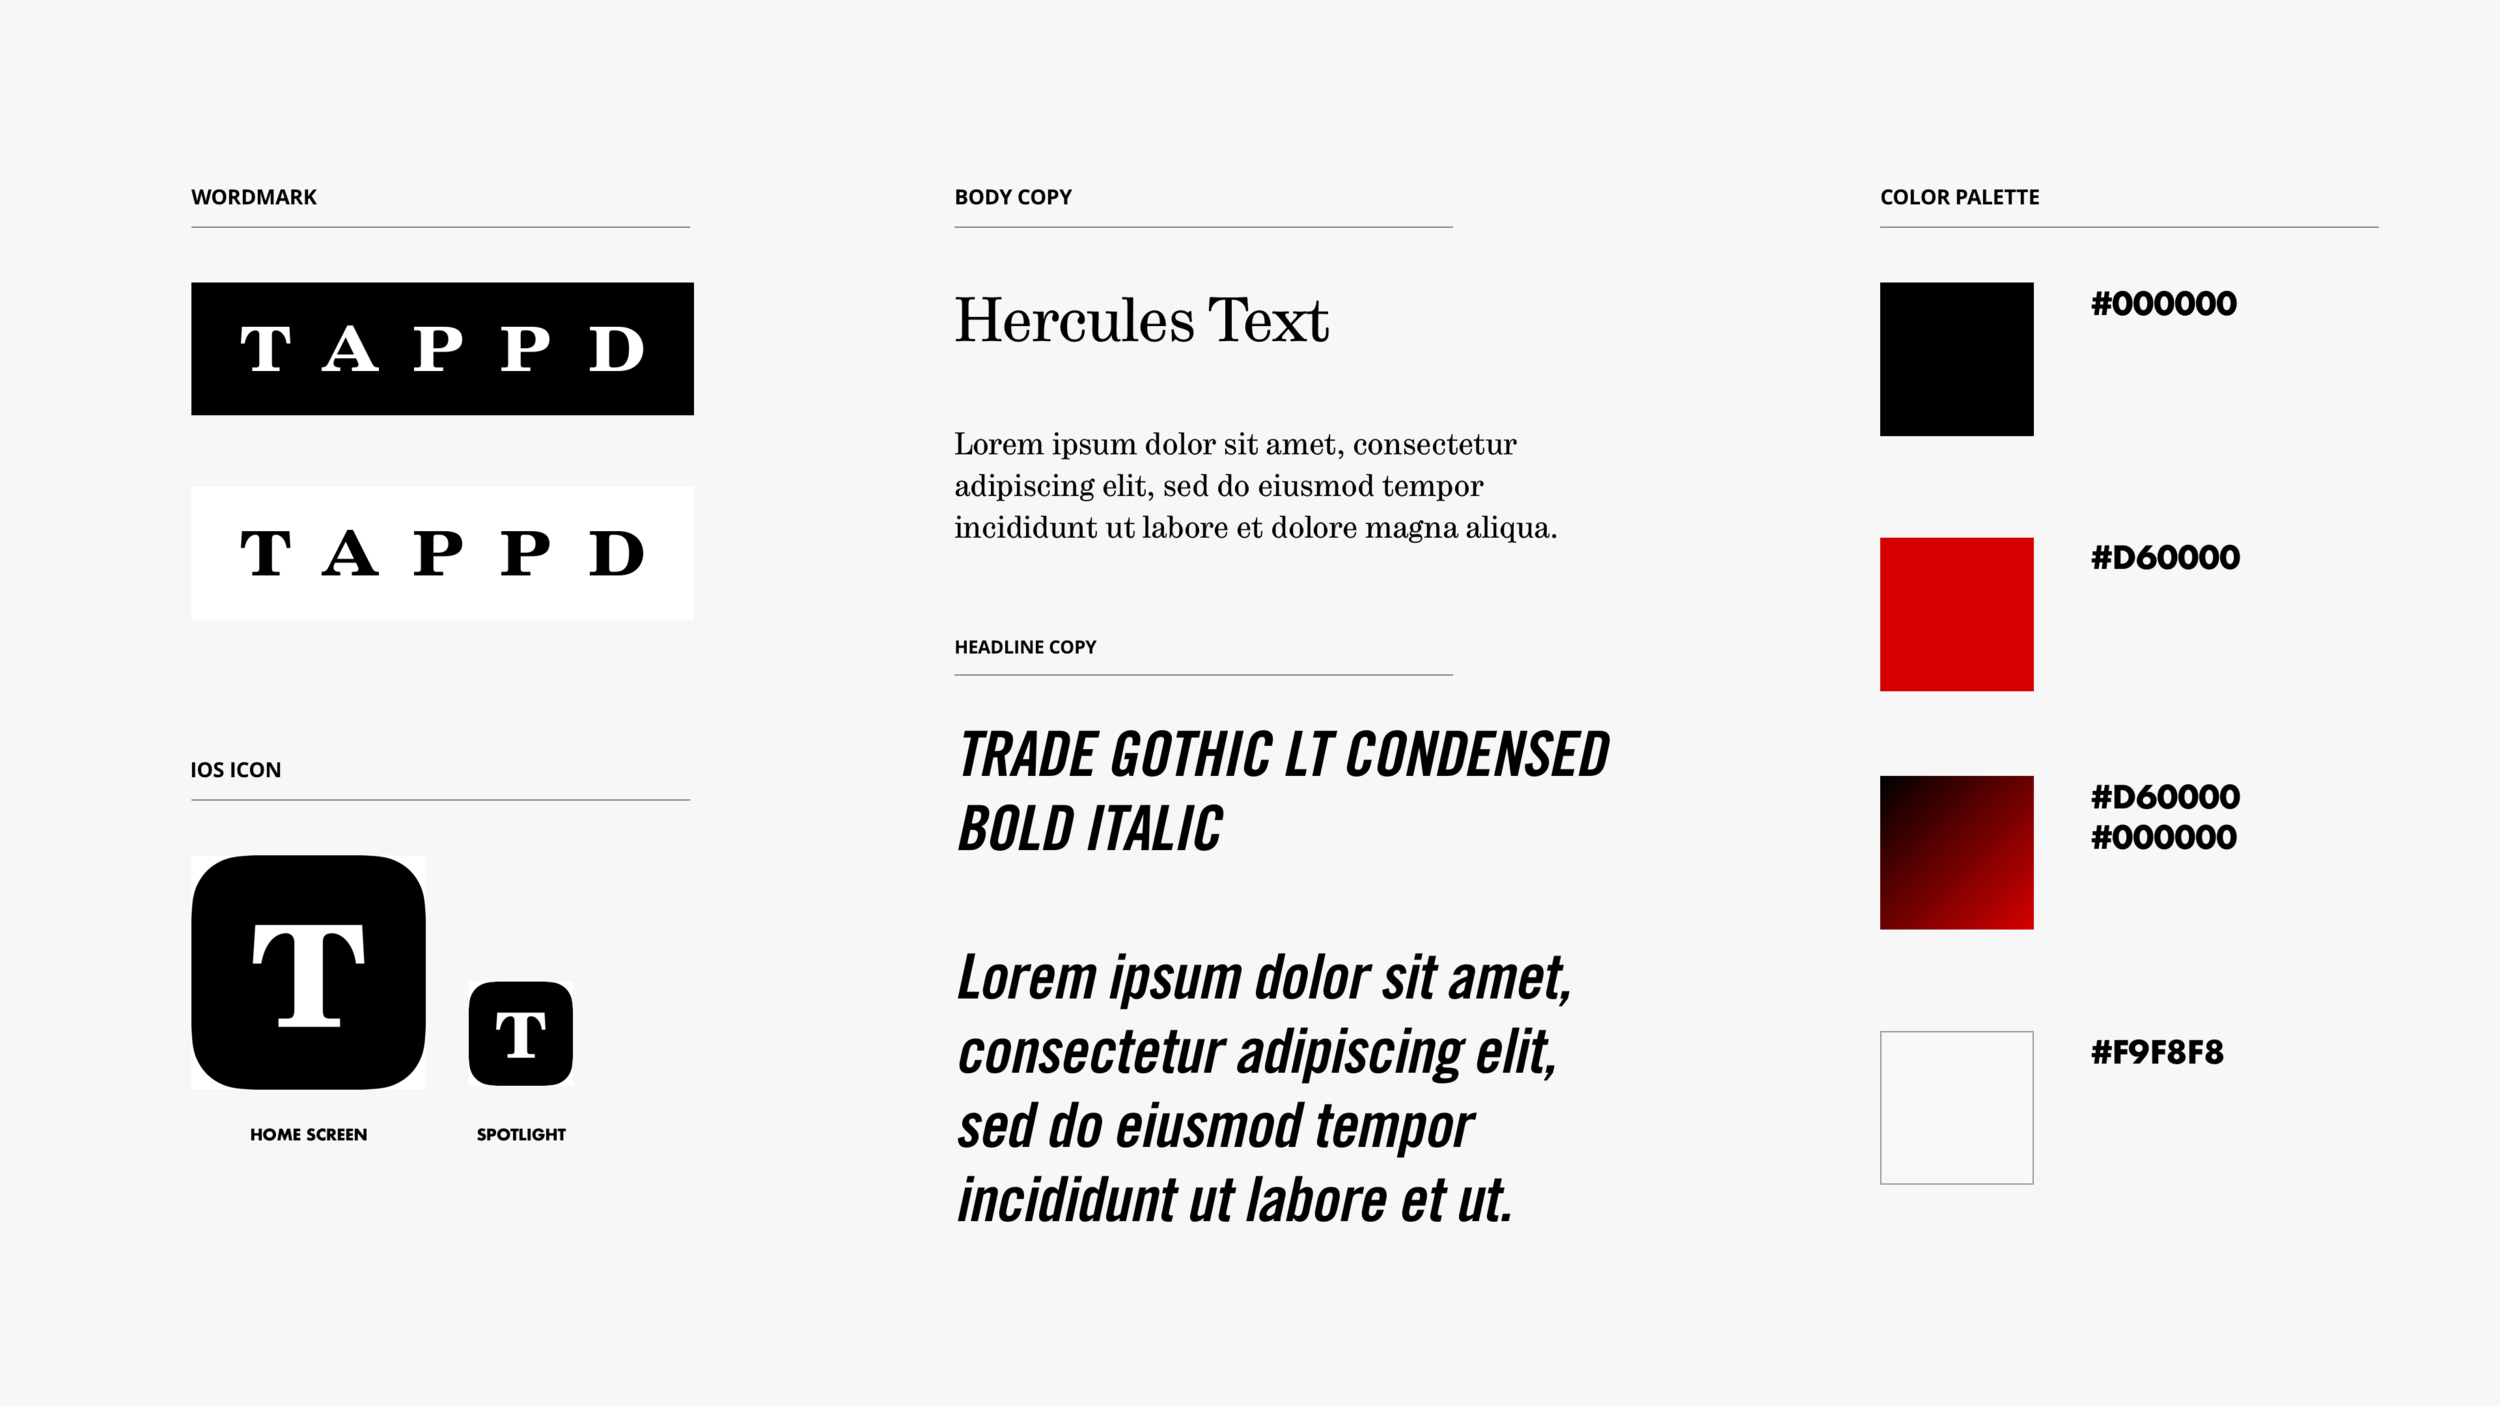 styleguide_05_01_18.png